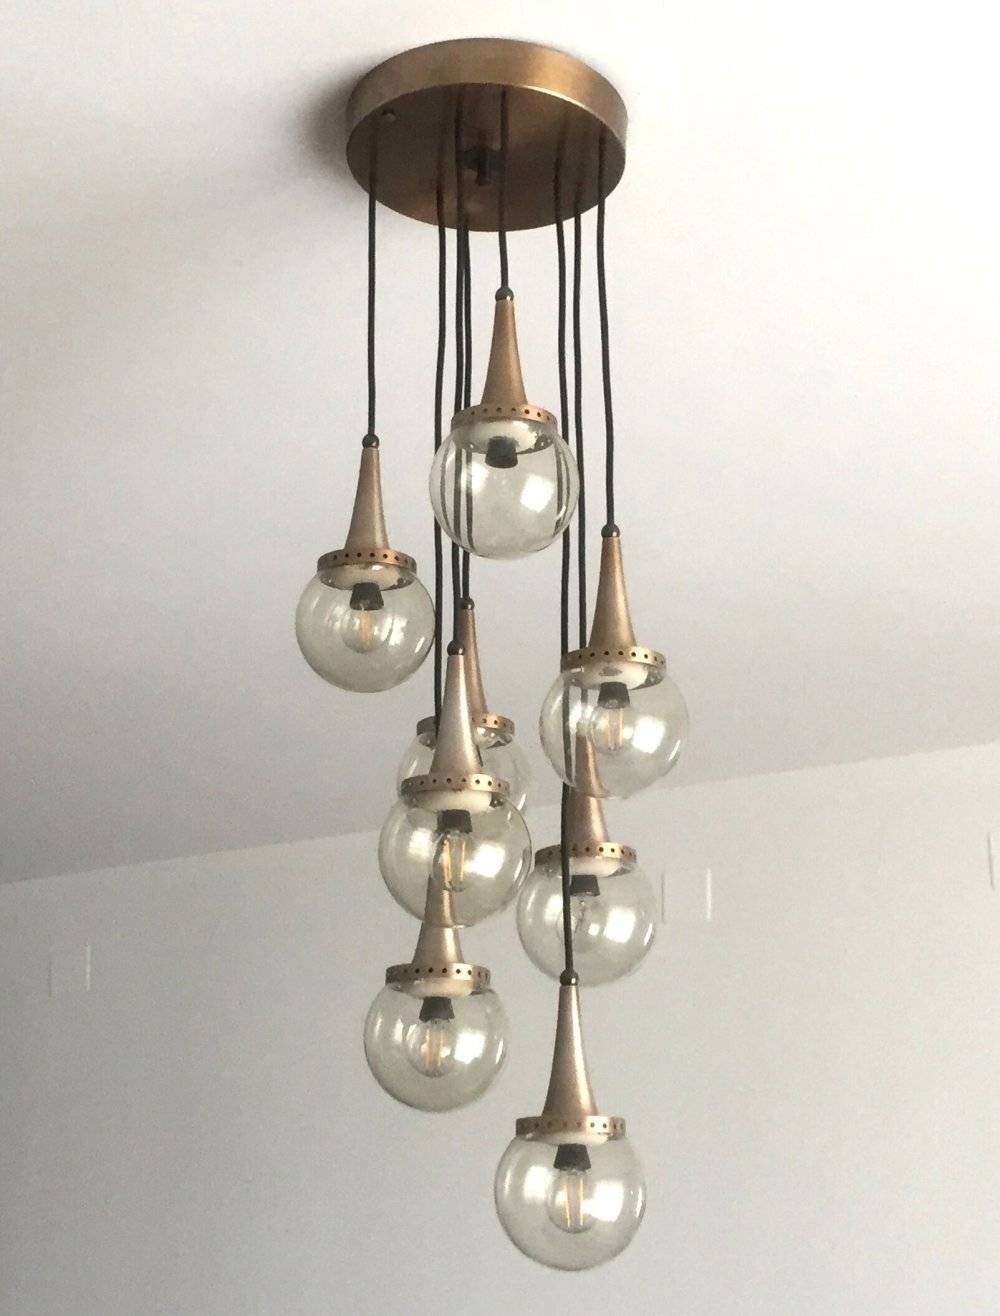 Space-Age Eight Glass Spheres Chandelier, Italy 1960